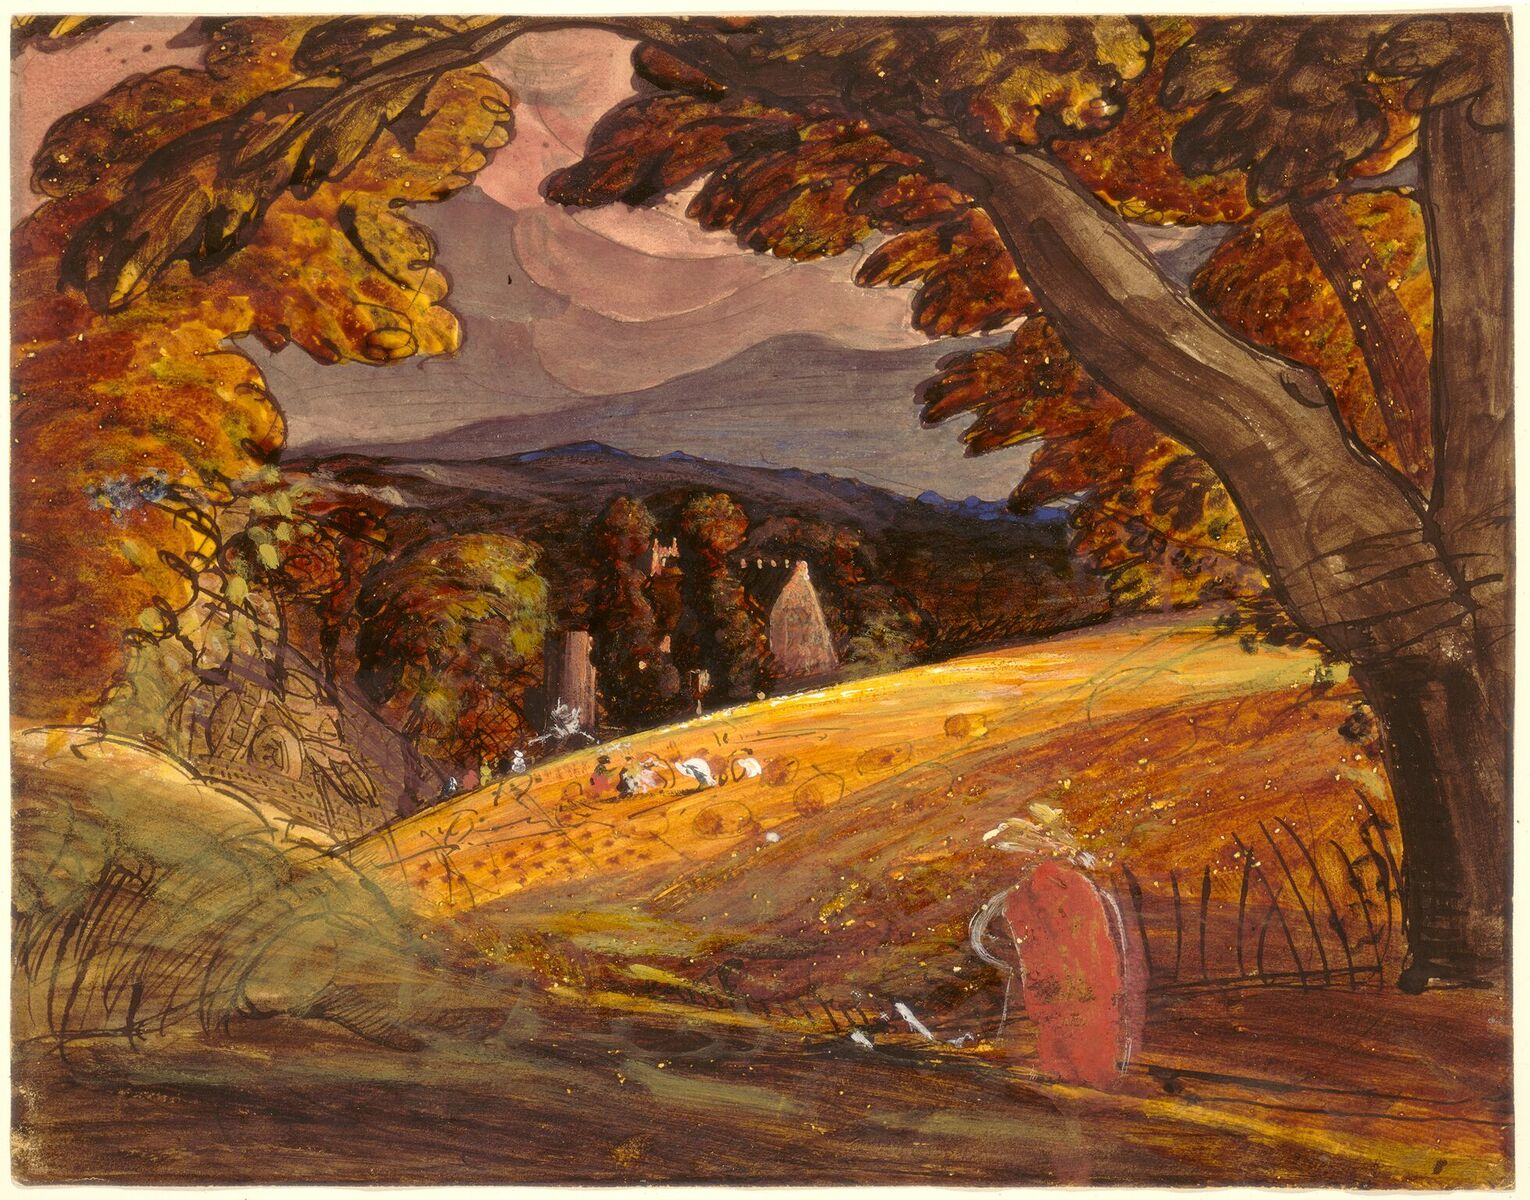 Samuel Palmer Harvesters by Firelight, 1830 pen and black ink with watercolor and gouache on wove paper overall: 28.7 x 36.7 cm (11 5/16 x 14 7/16 in.)  Cover photo:  Winslow Homer The Sick Chicken, 1874 watercolor, gouache, and graphite on wove paper overall: 24.7 x 19.7 cm (9 3/4 x 7 3/4 in